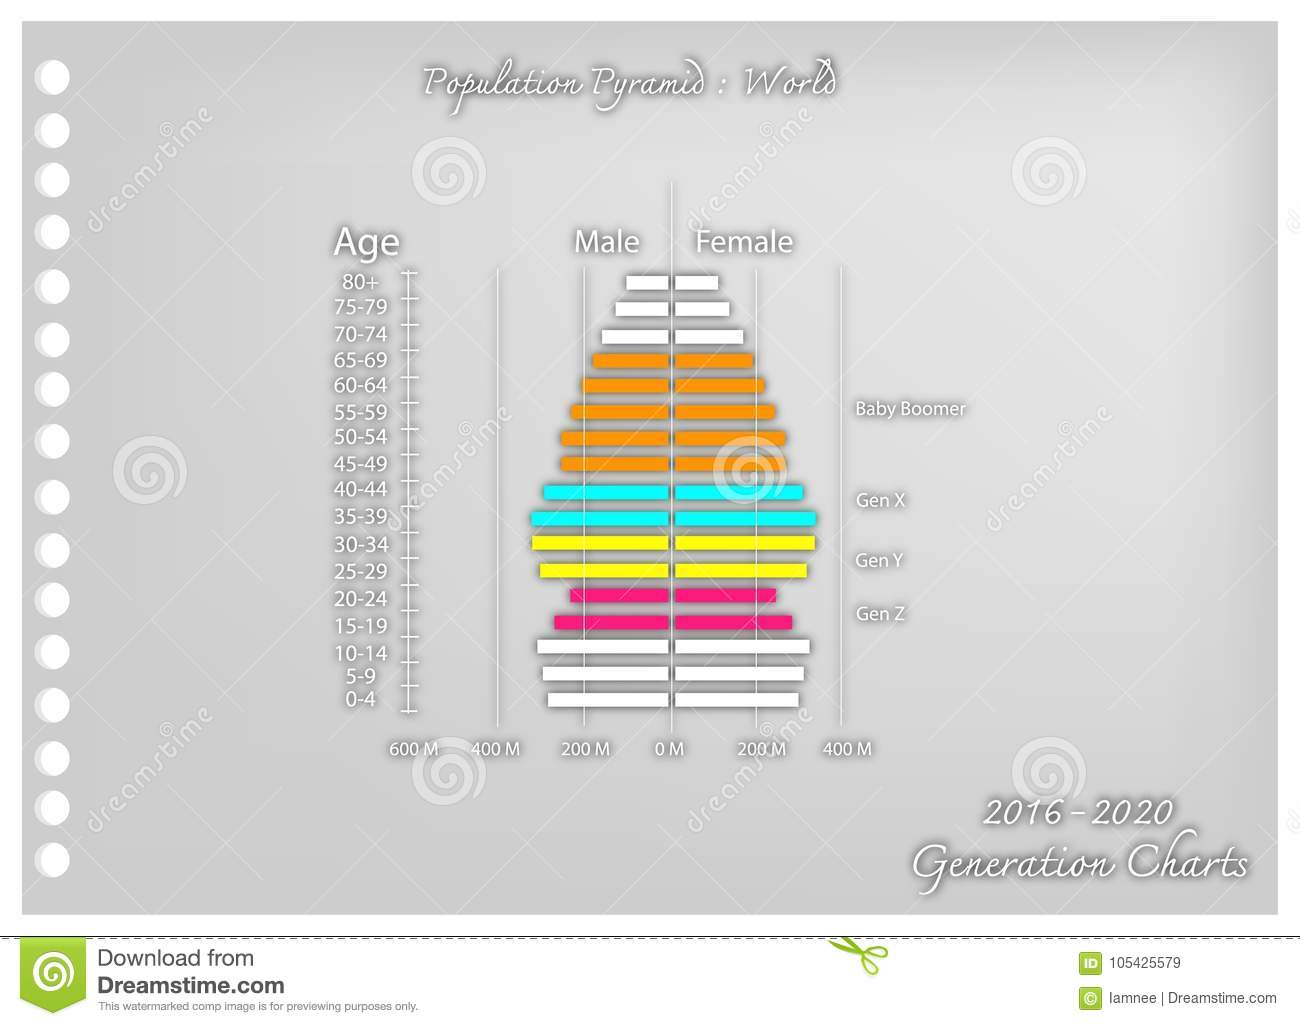 hight resolution of population and demography illustration paper art craft of population pyramids chart or age structure graph with baby boomers generation gen x